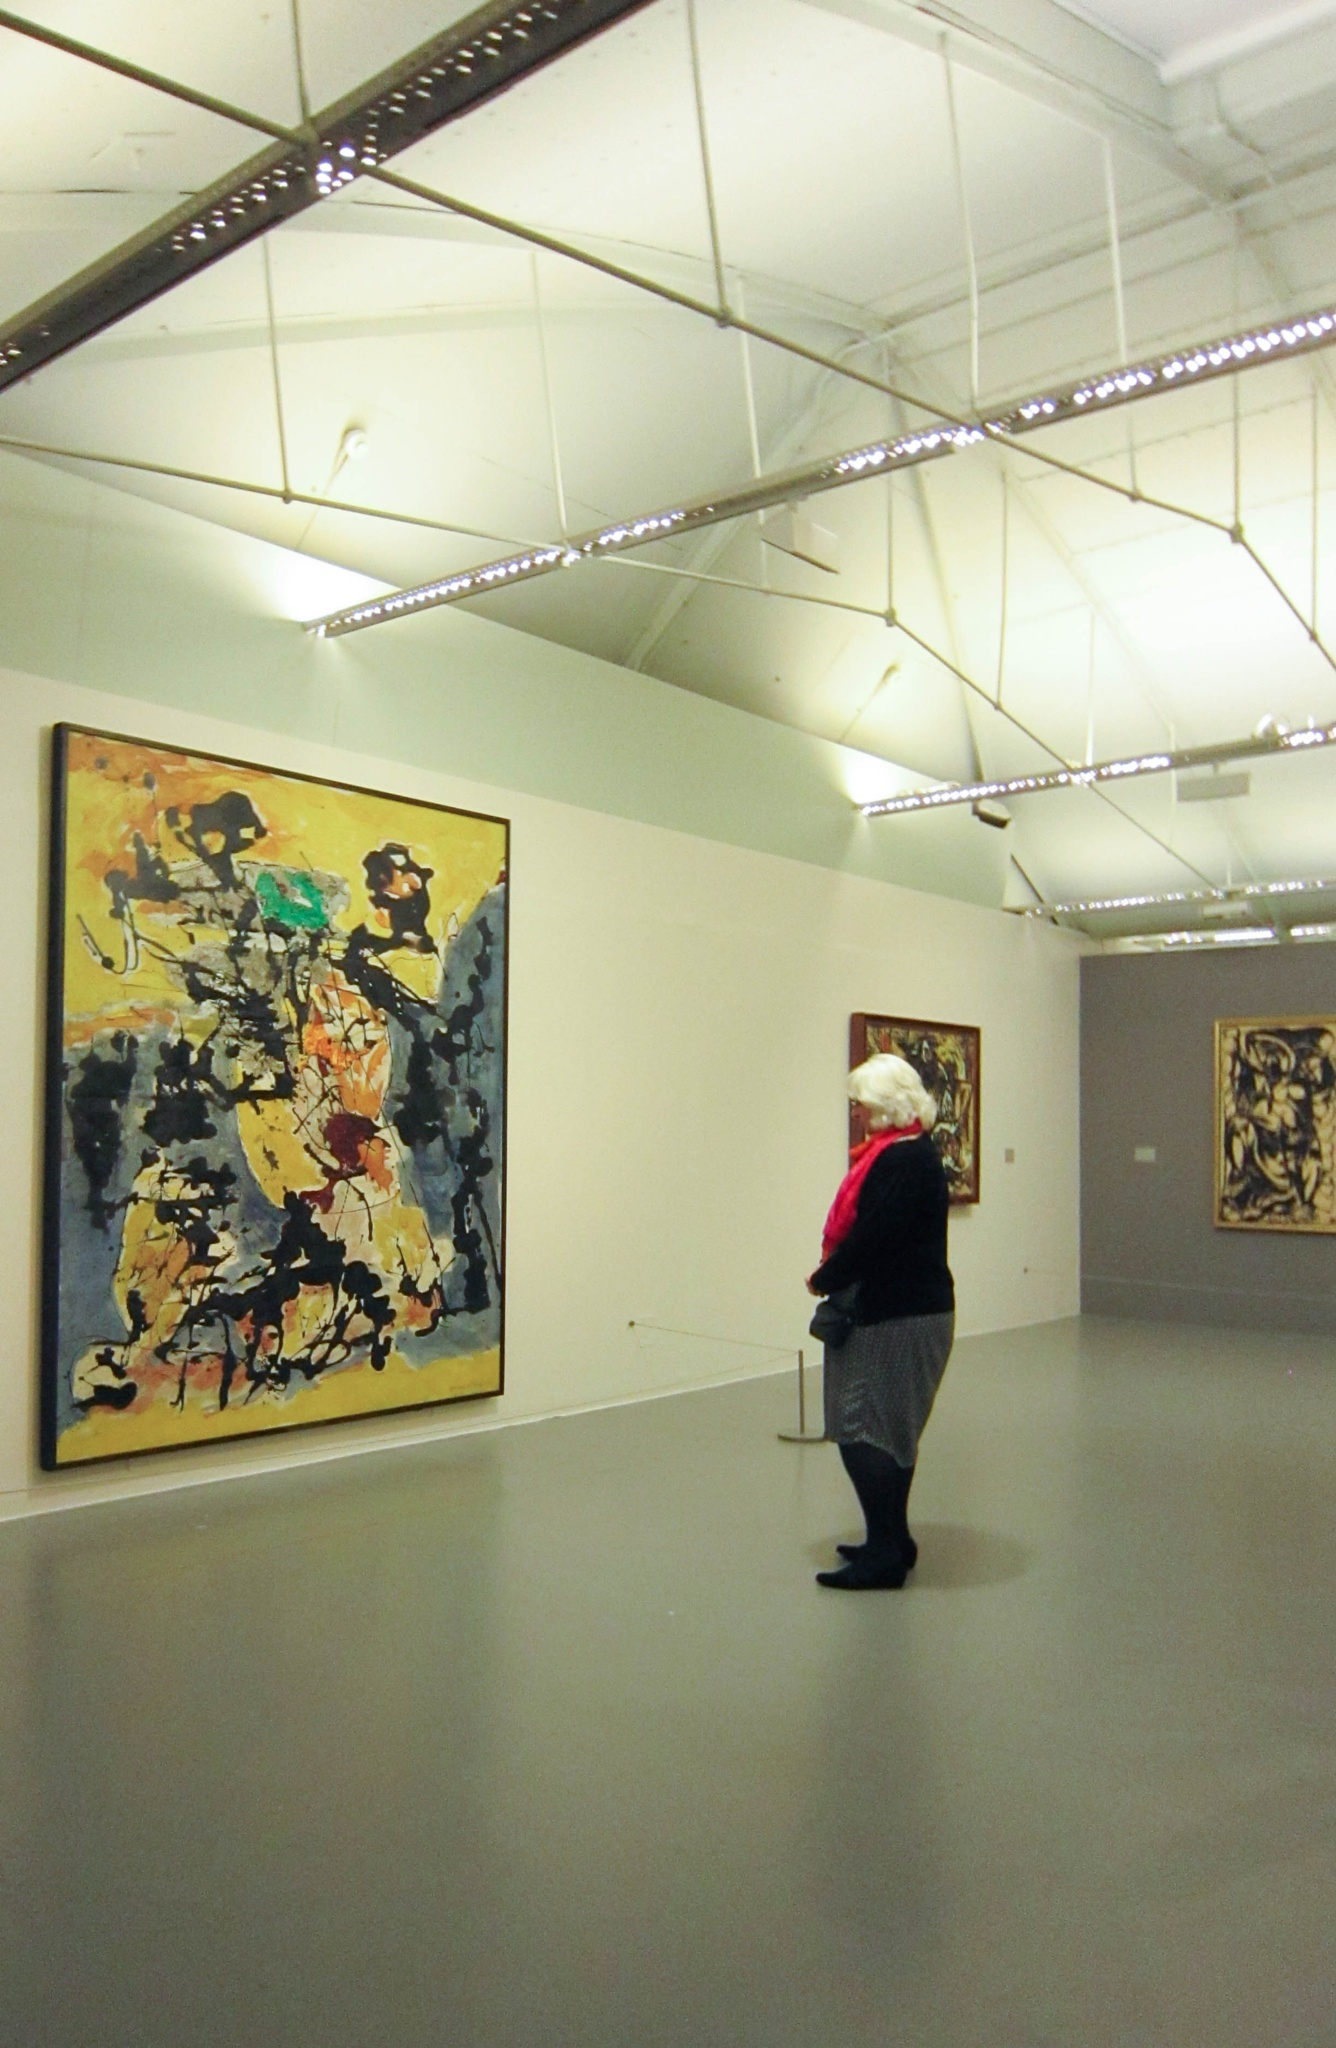 Tate Liverpool 2 by Scottie